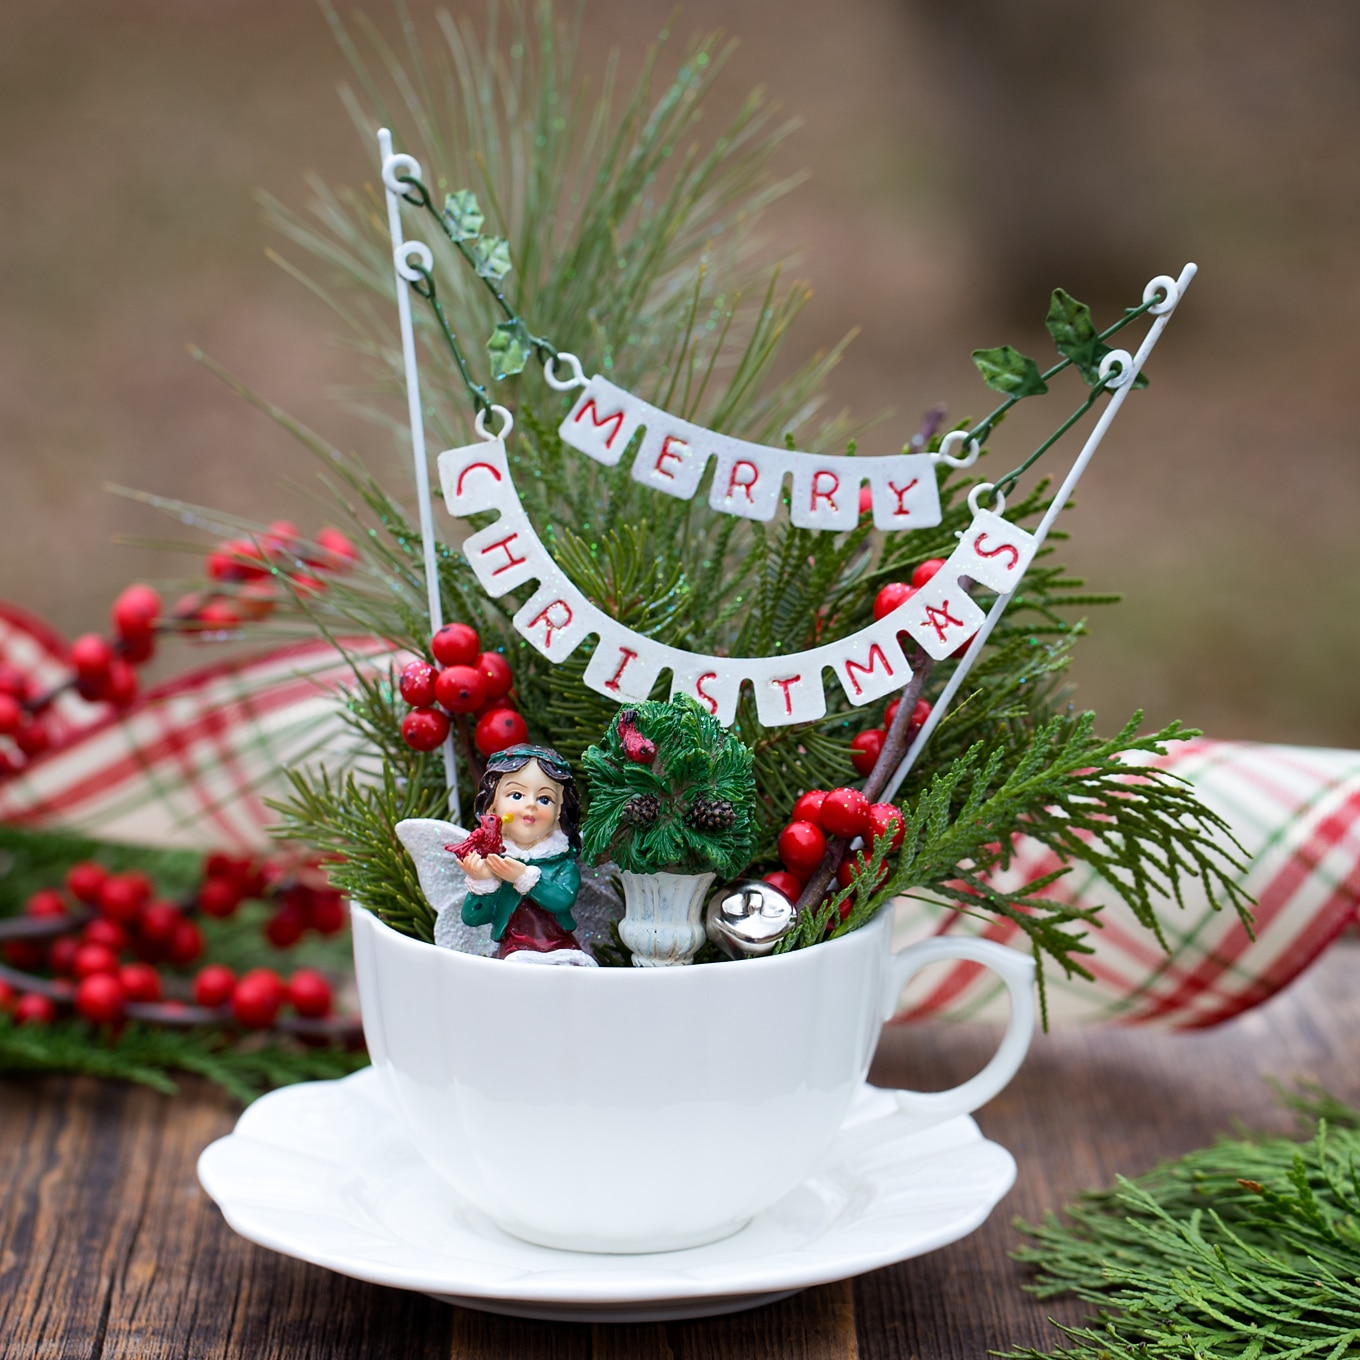 How to Make a Christmas Teacup Garden